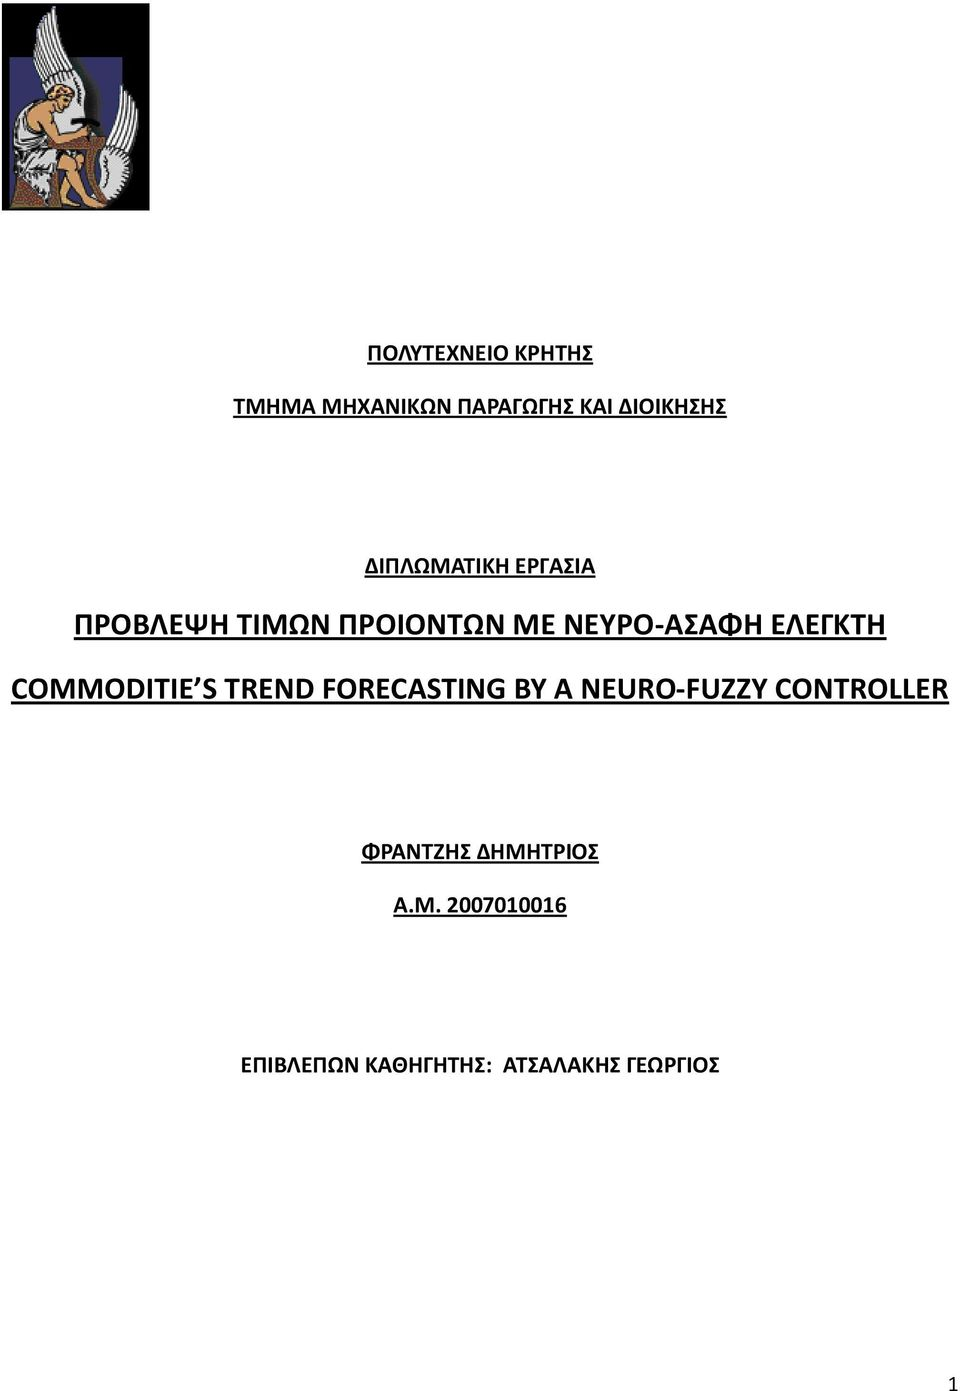 ΕΛΕΓΚΤΗ COMMODITIE S TREND FORECASTING BY A NEURO-FUZZY